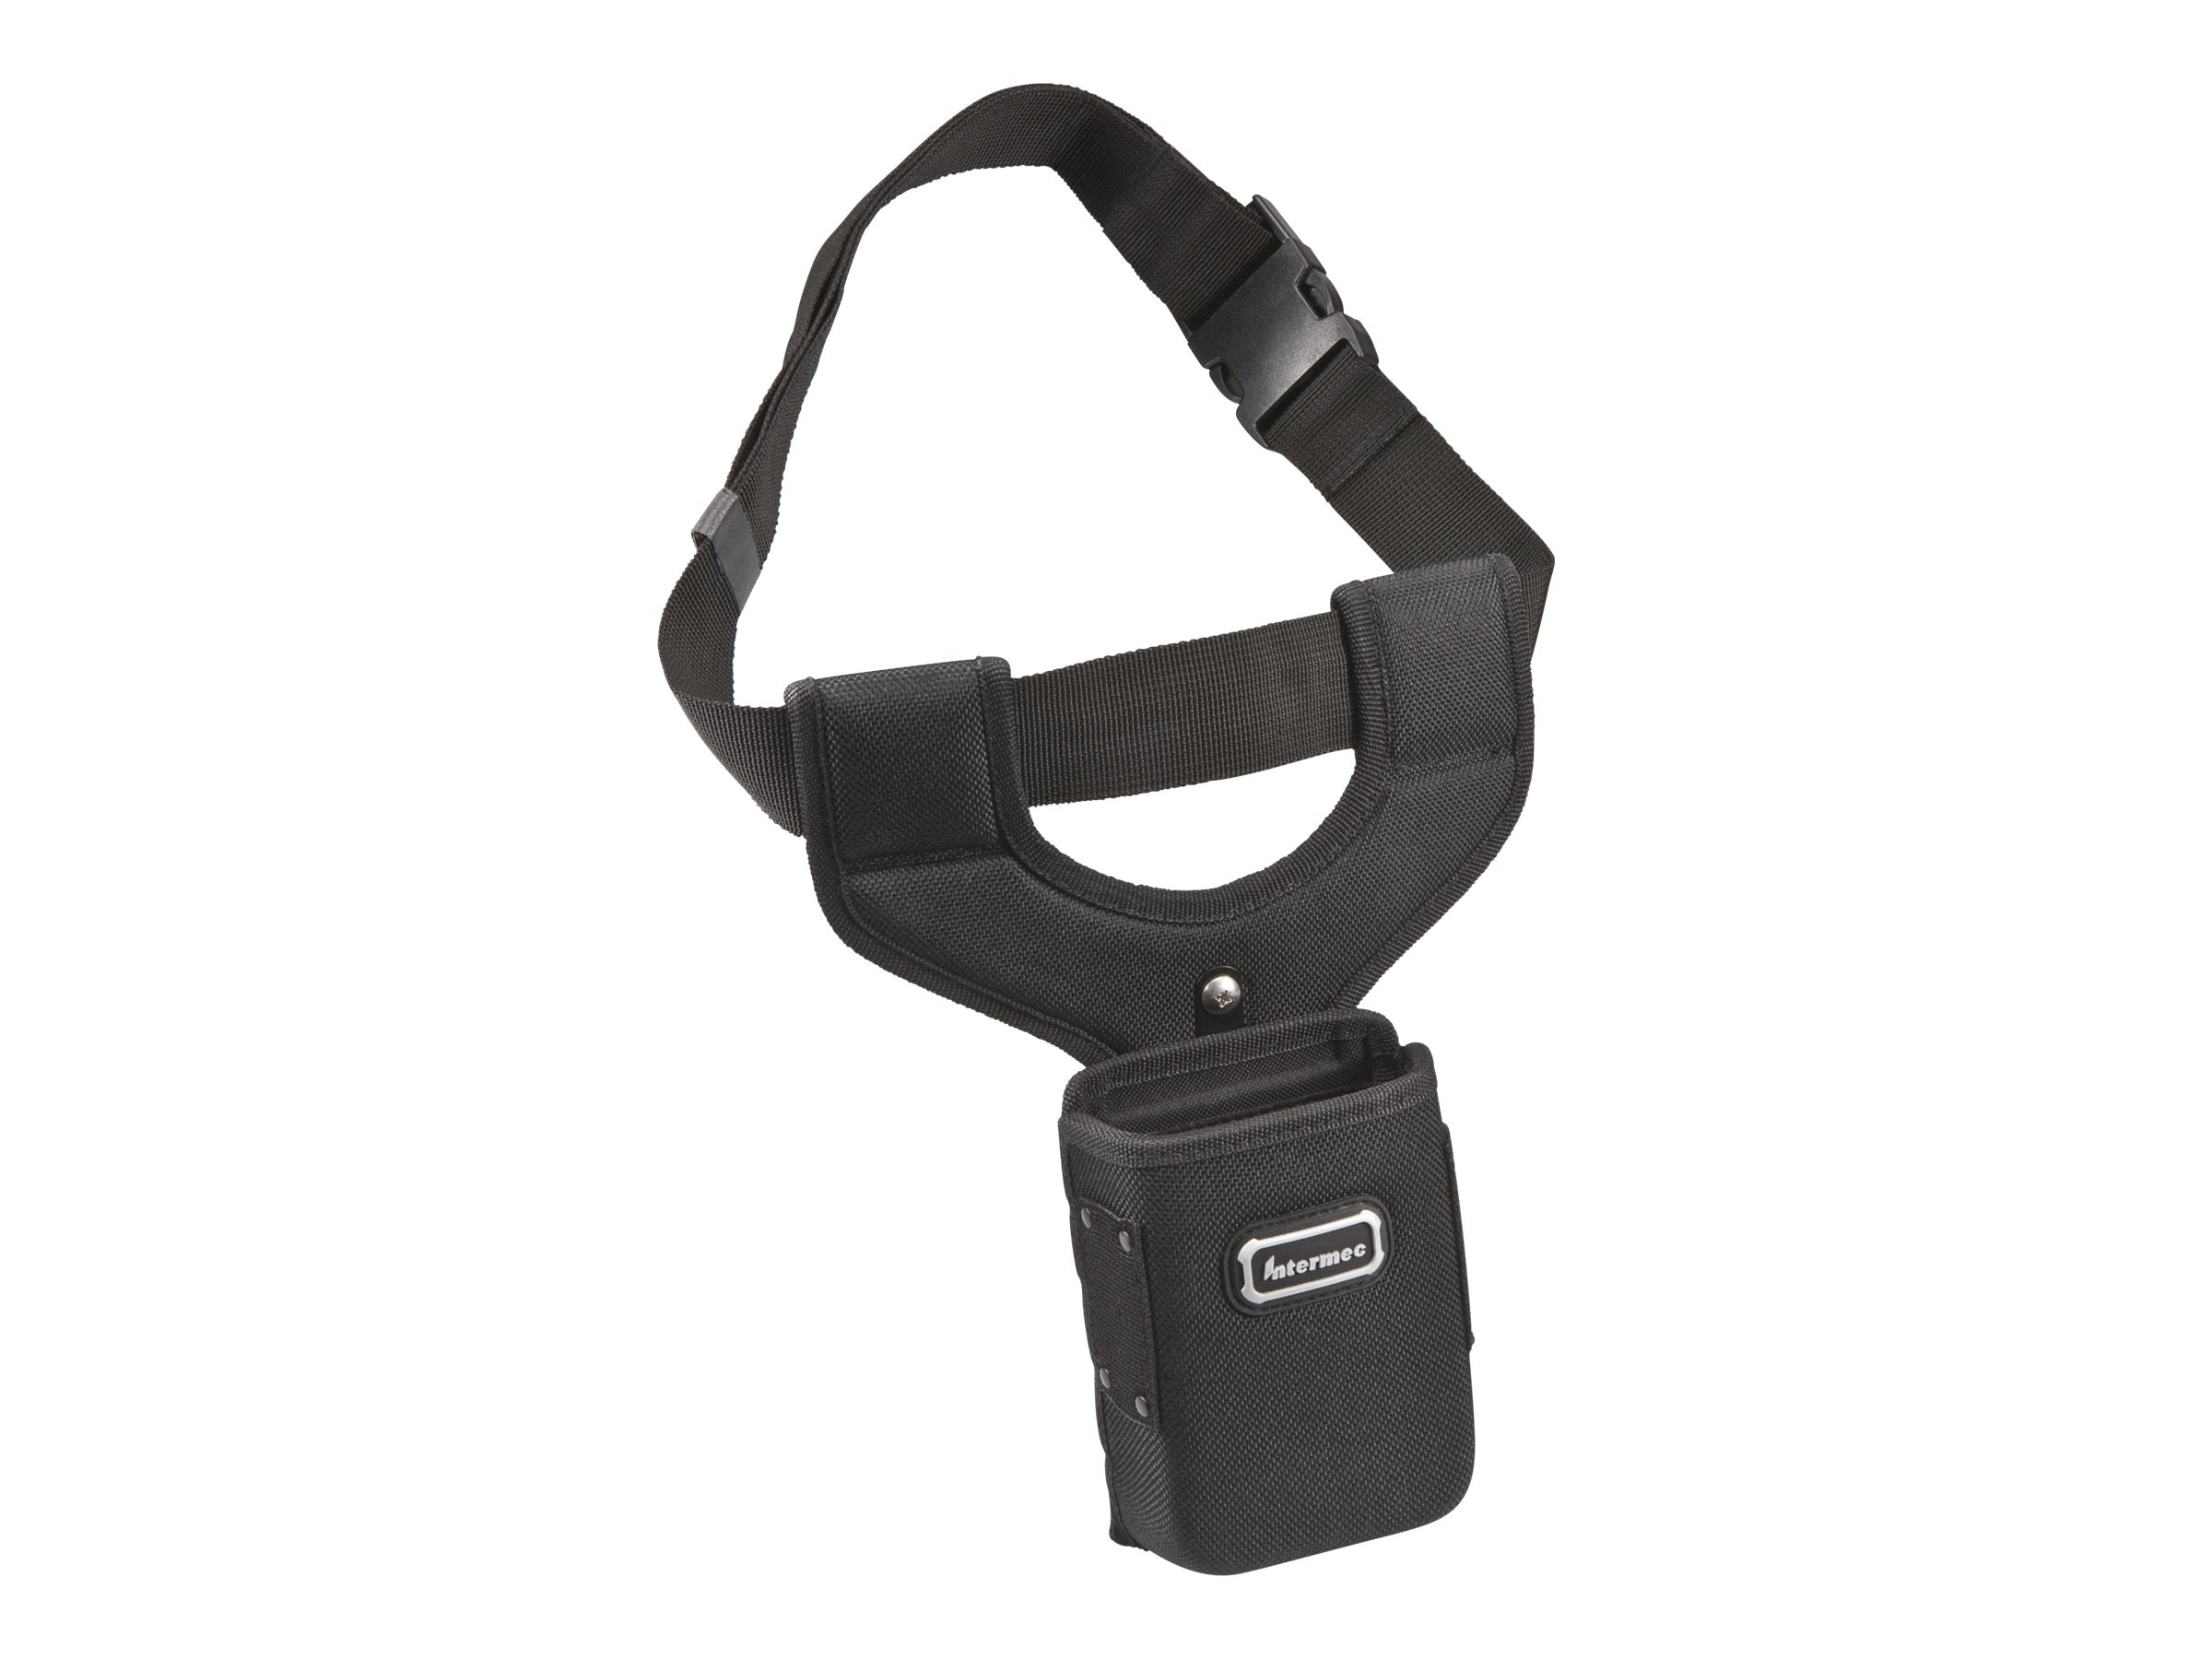 Intermec Holster for CN70 w o Scanner Handle, 815-067-001, 13705510, Carrying Cases - Other